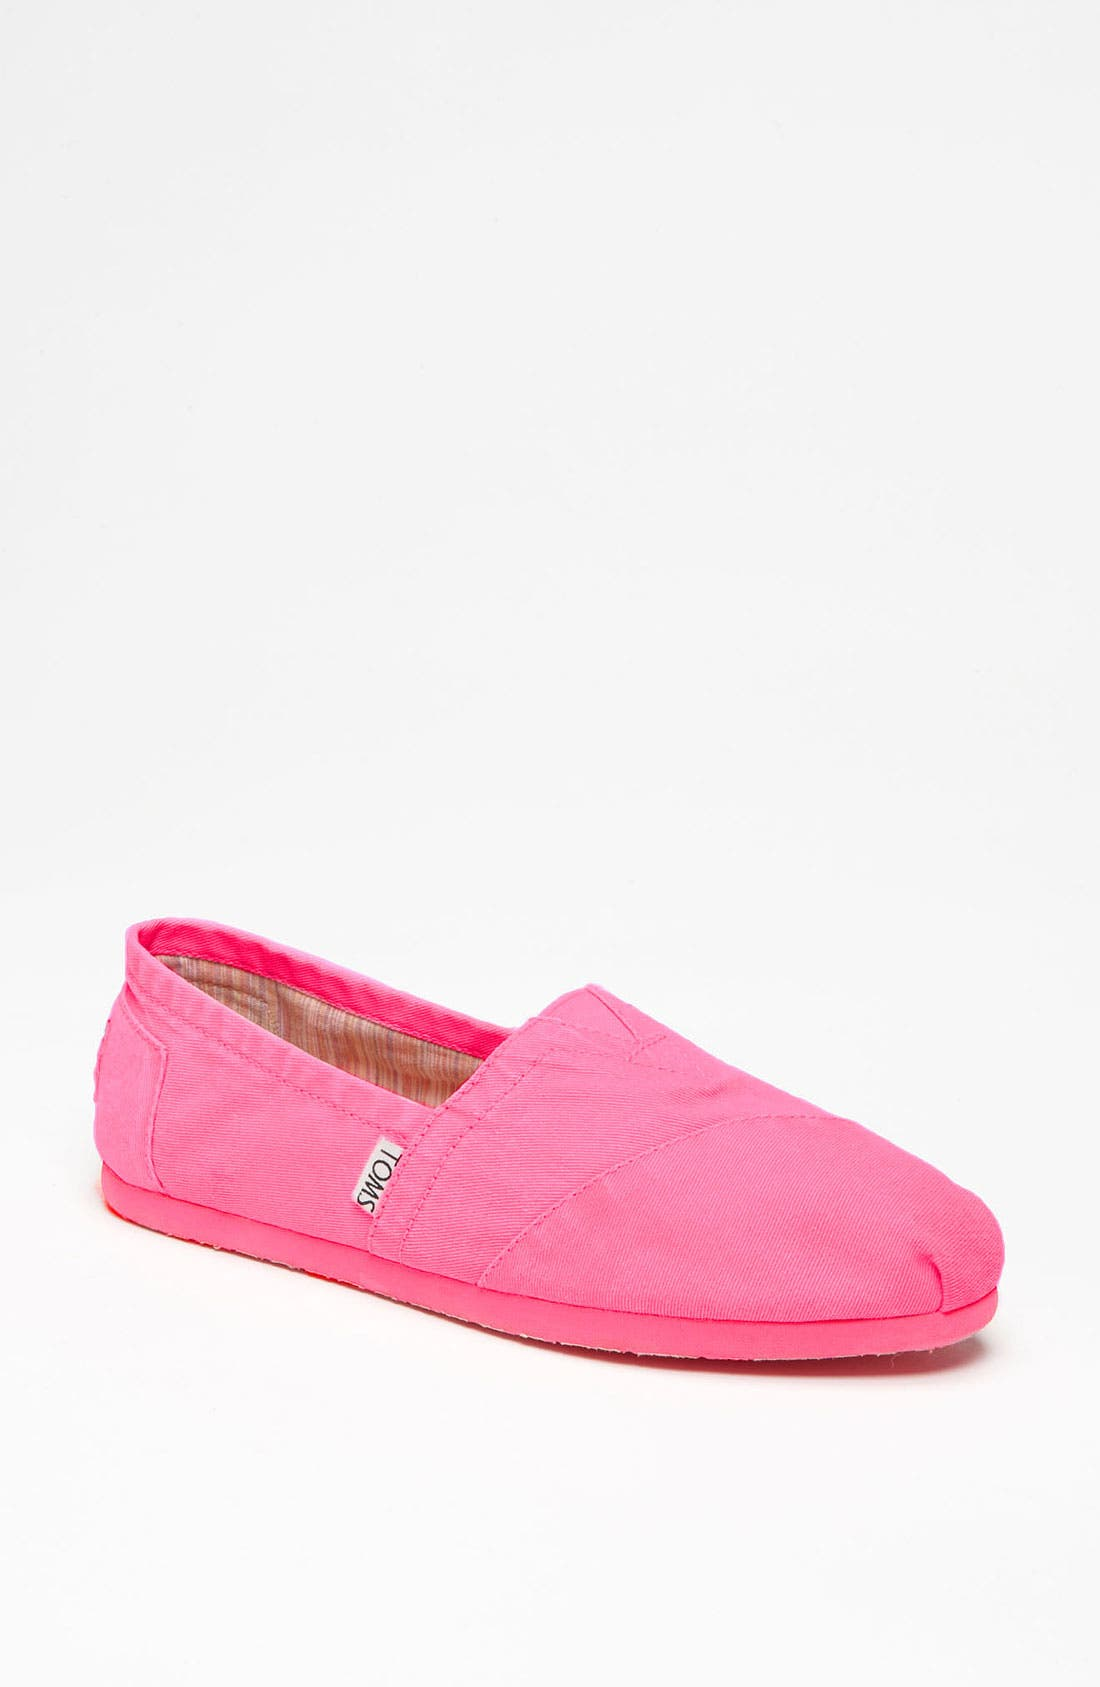 Alternate Image 1 Selected - TOMS 'Classic - Palmetto' Slip-On (Women)